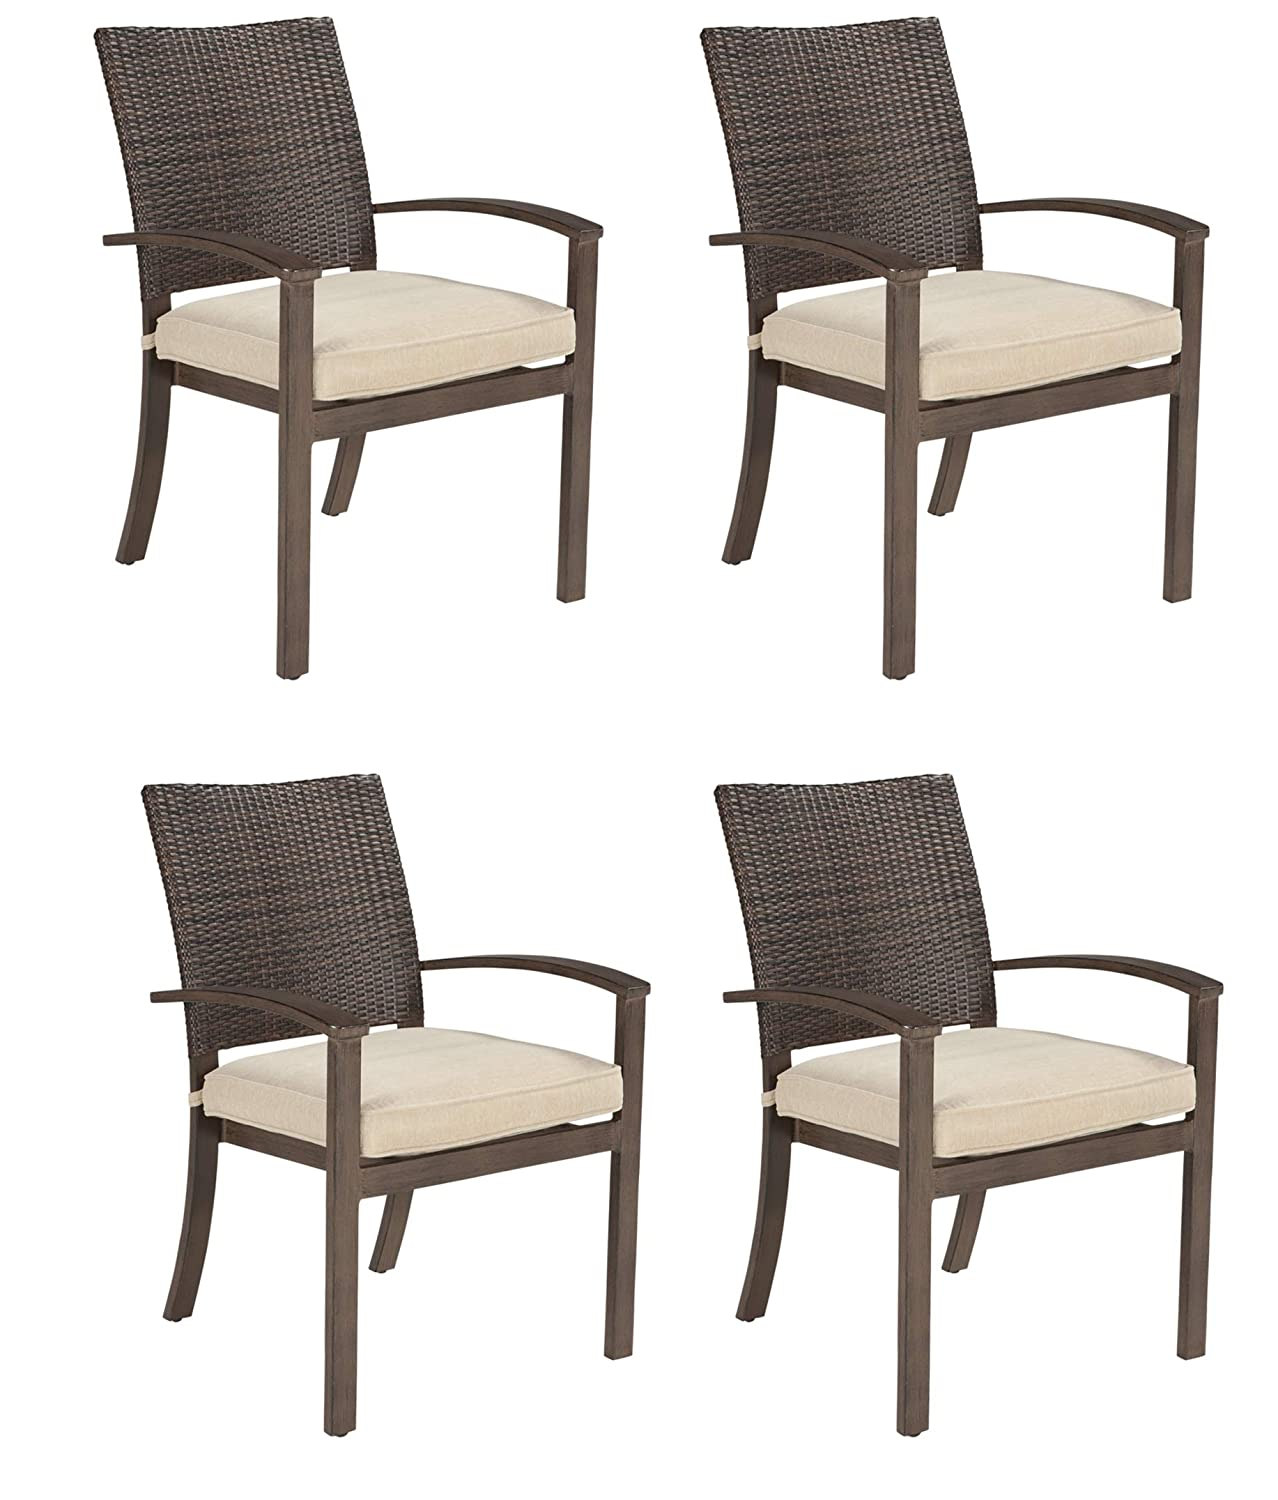 Amazon com ashley furniture signature design moresdale outdoor dining chair with cushion set of 4 woven wicker brown garden outdoor